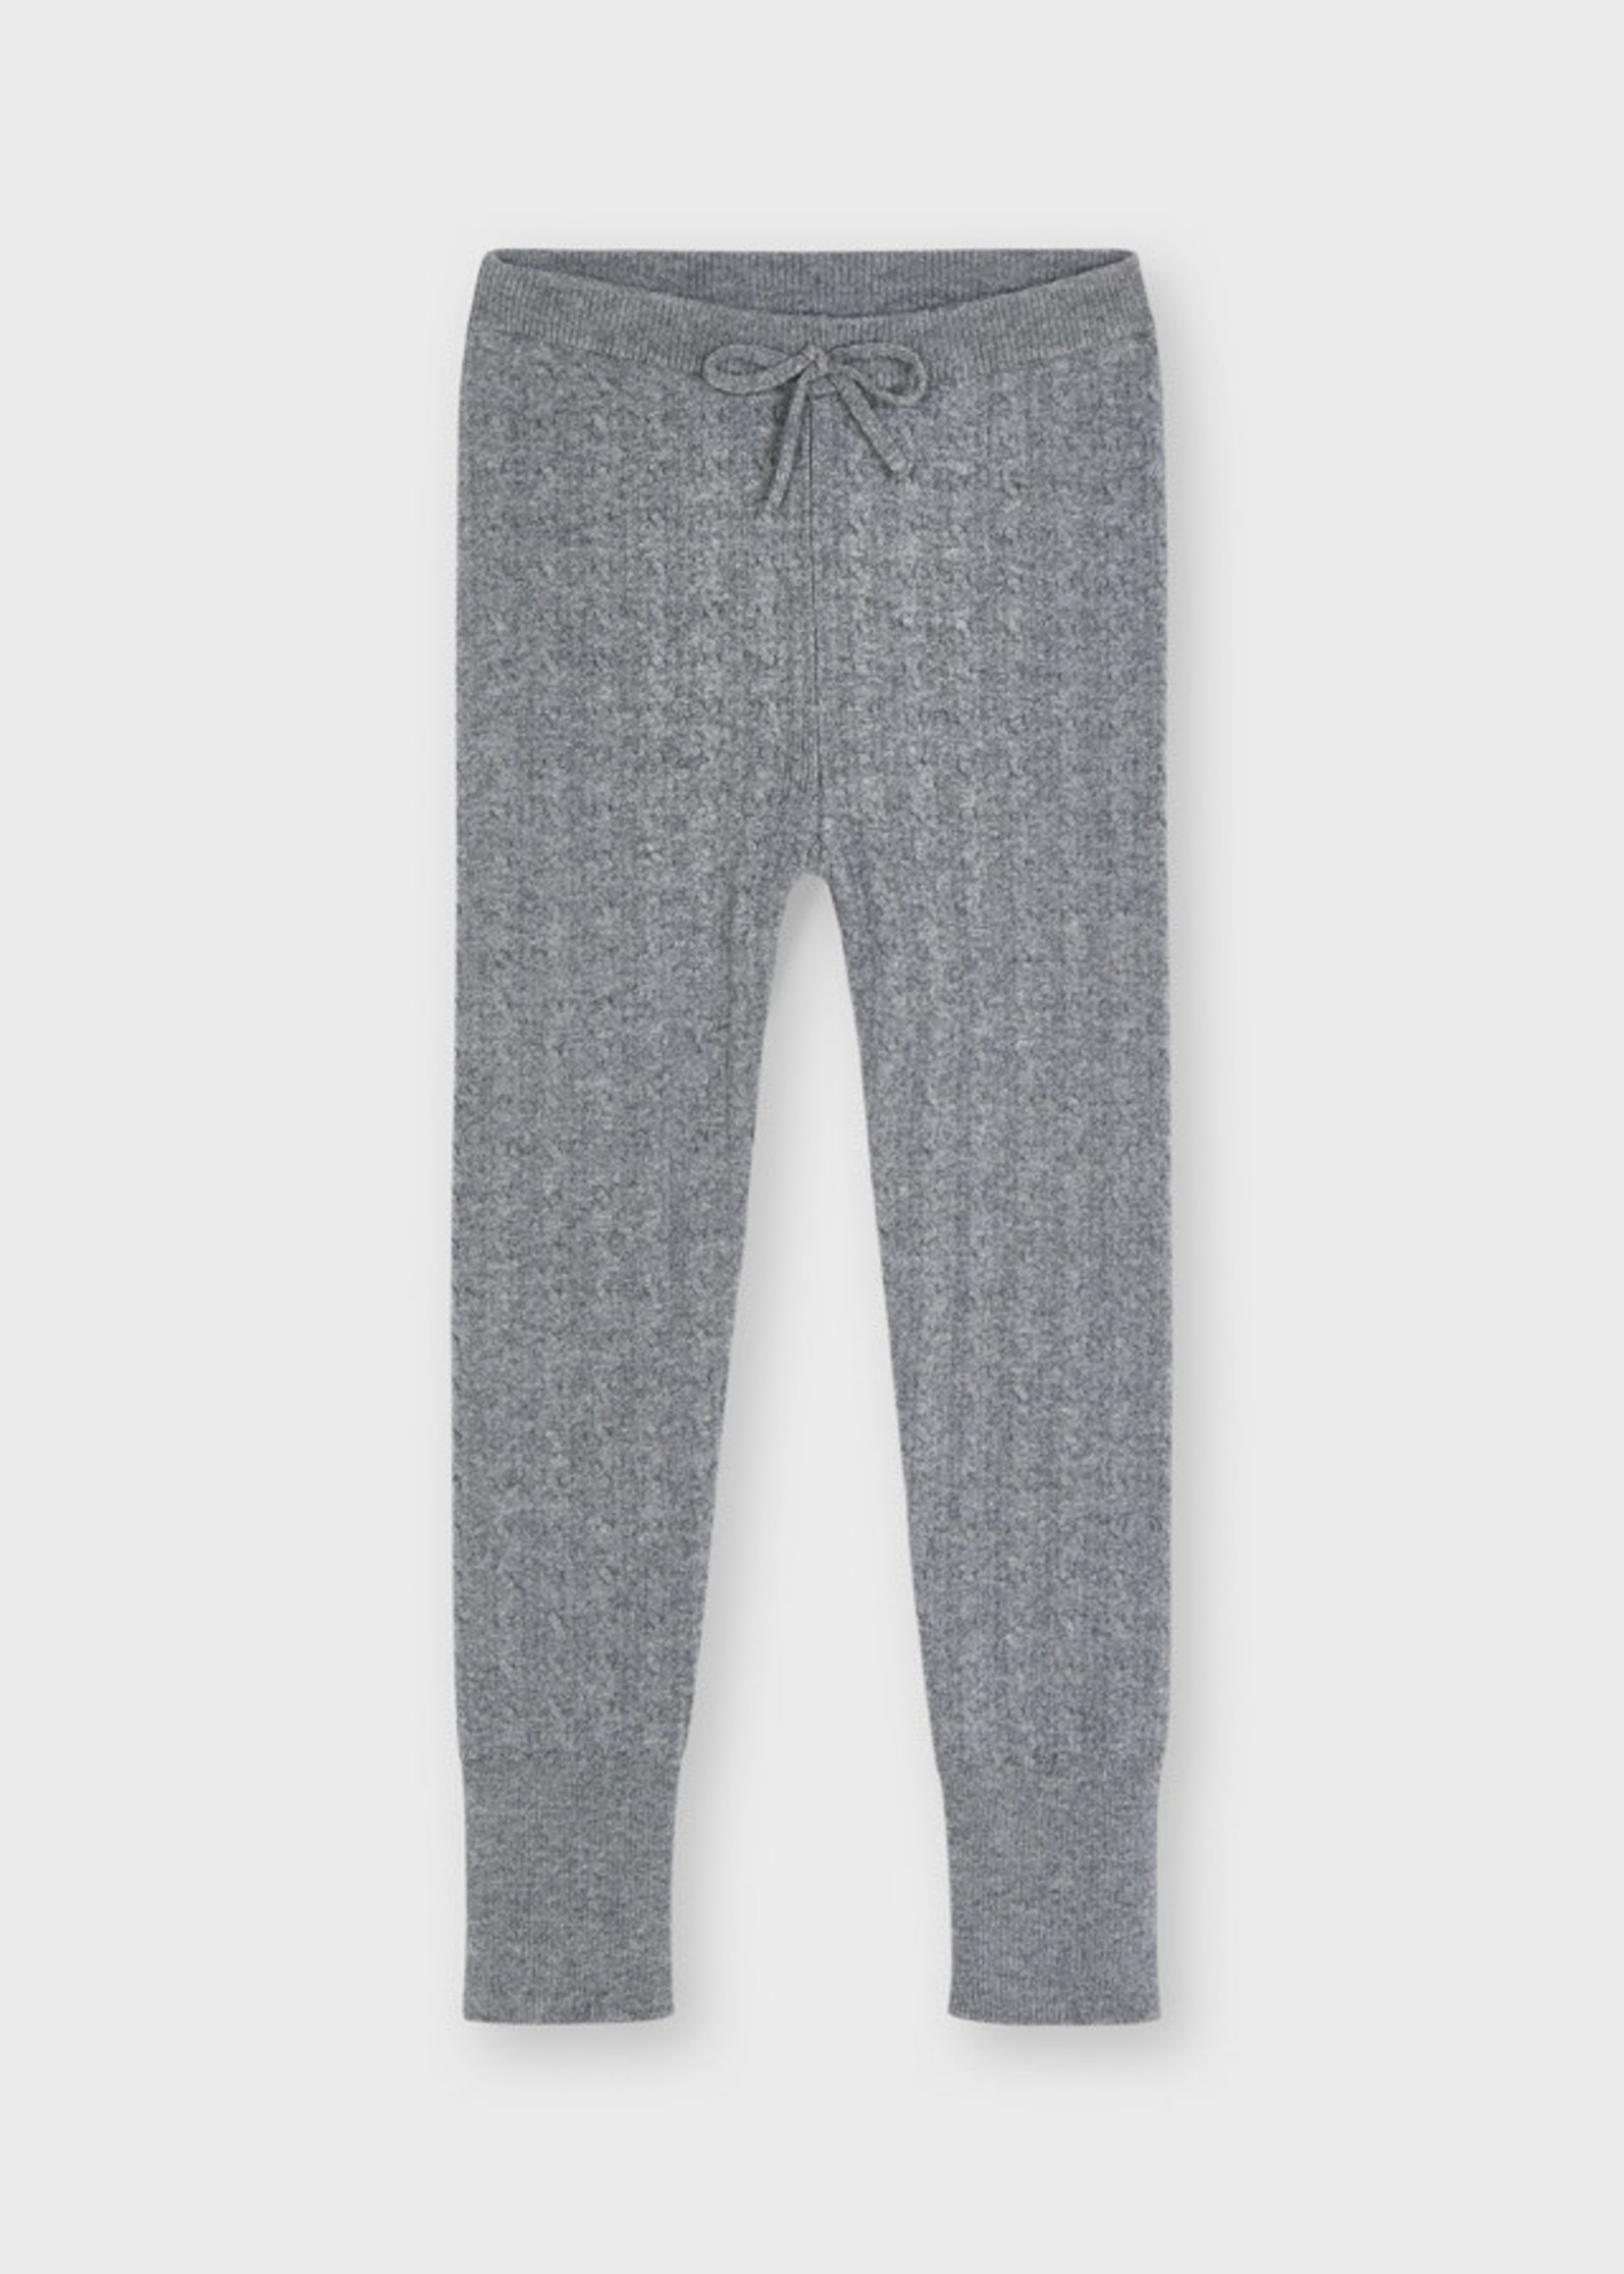 Mayoral M Cable Knit Legging